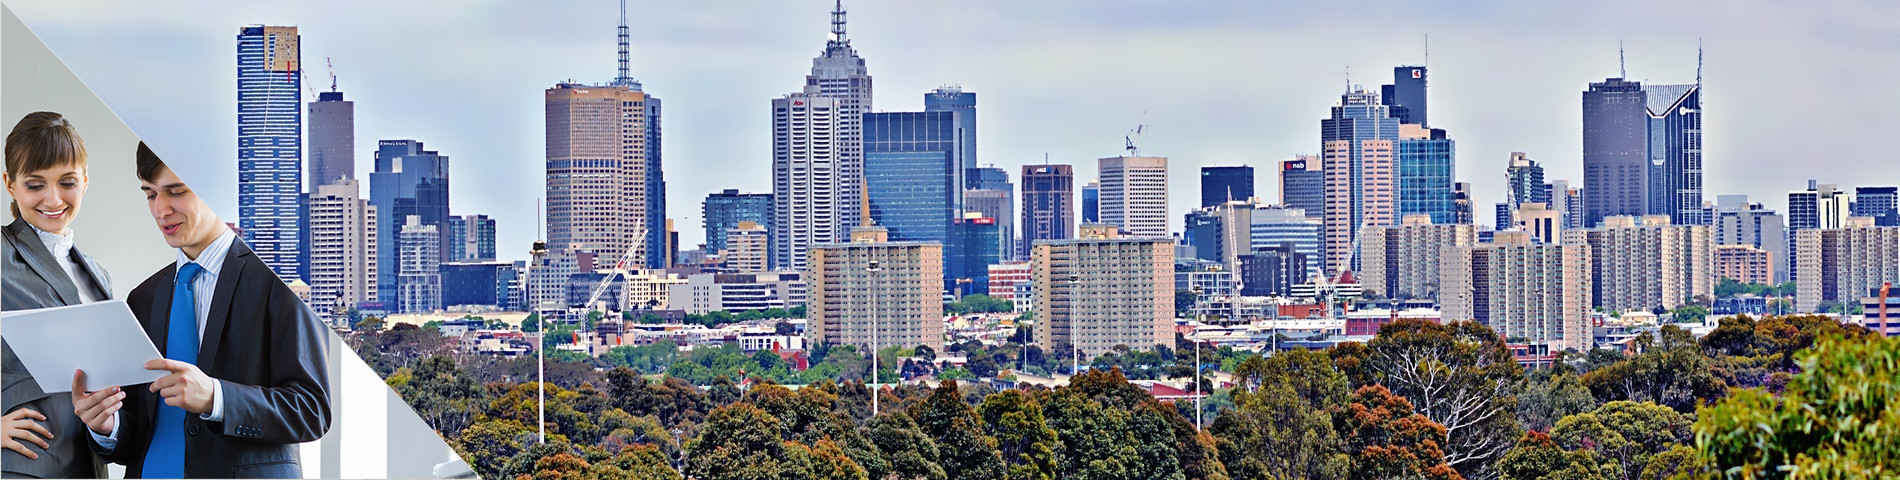 Melbourne - Business Individuale